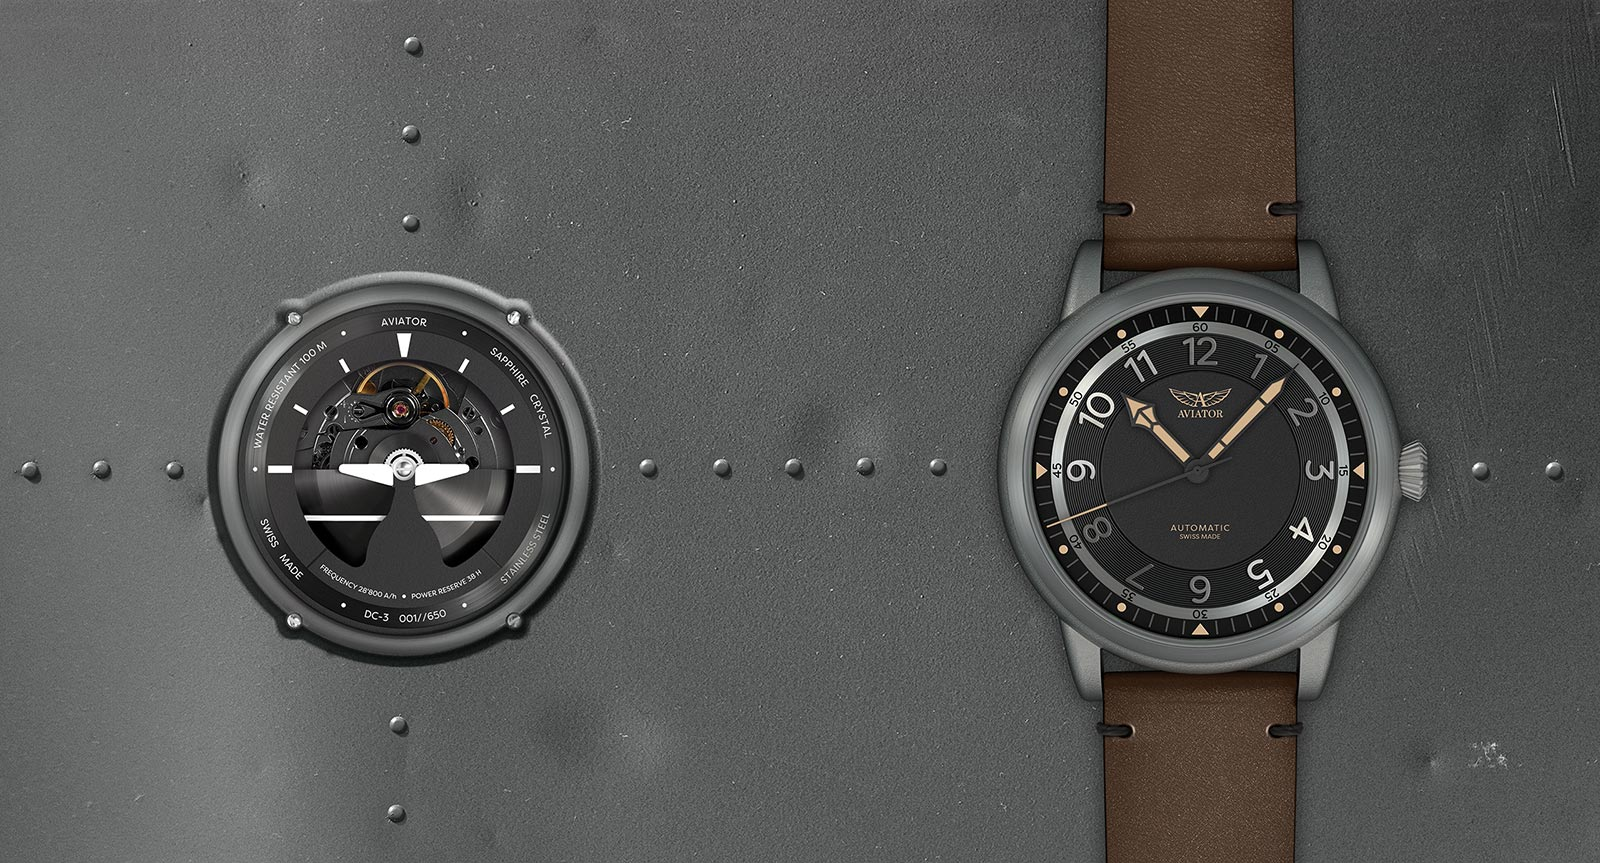 AVIATOR Watch Douglas Dakota Collection of Pilot Watches